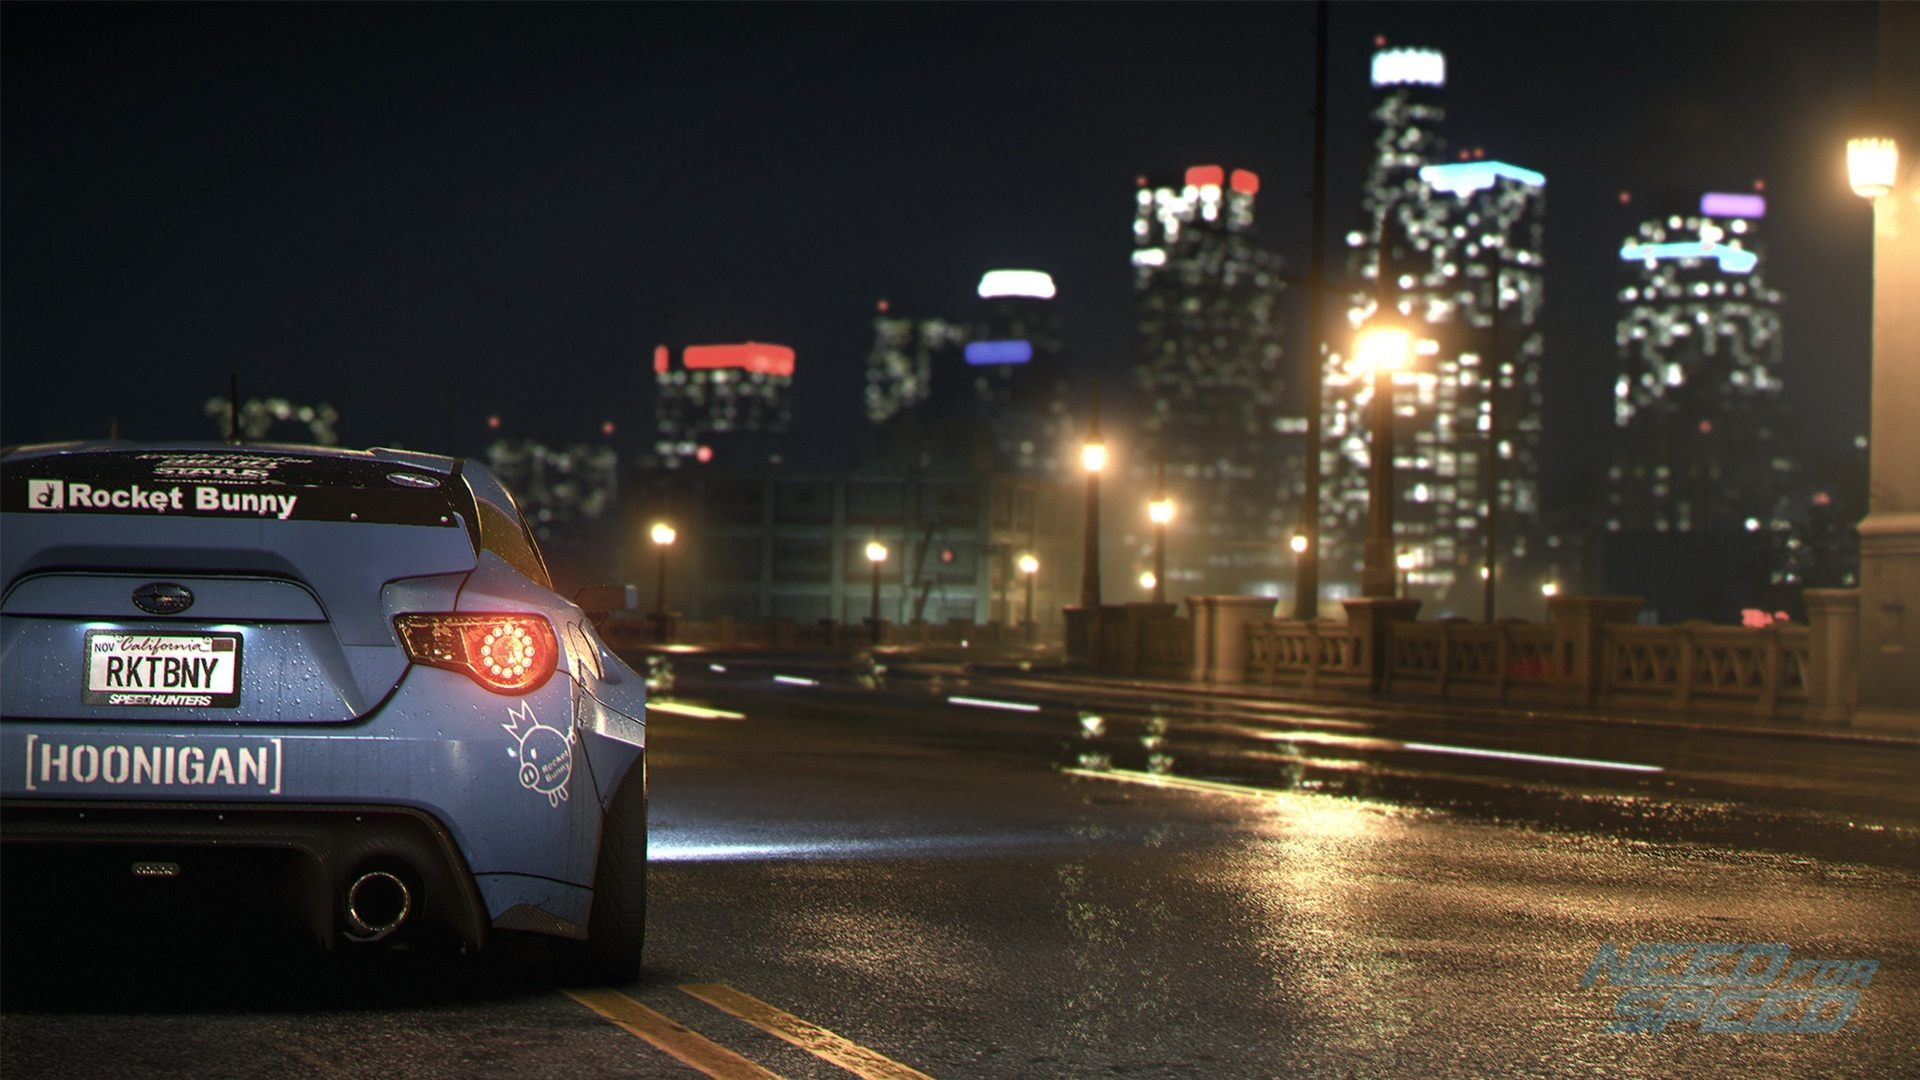 Gaming Wallpapers 287 Need For Speed 2016 99639 Hd